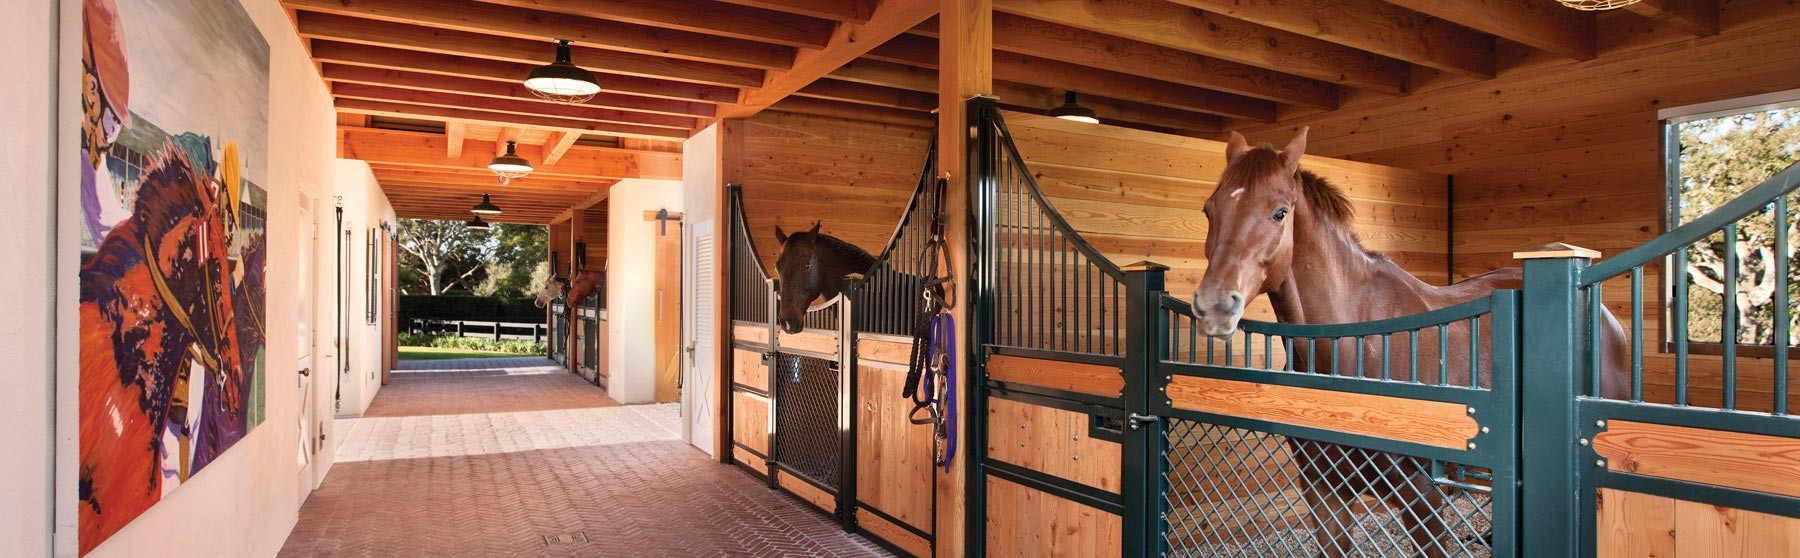 Getting More Information about Equine Equipment